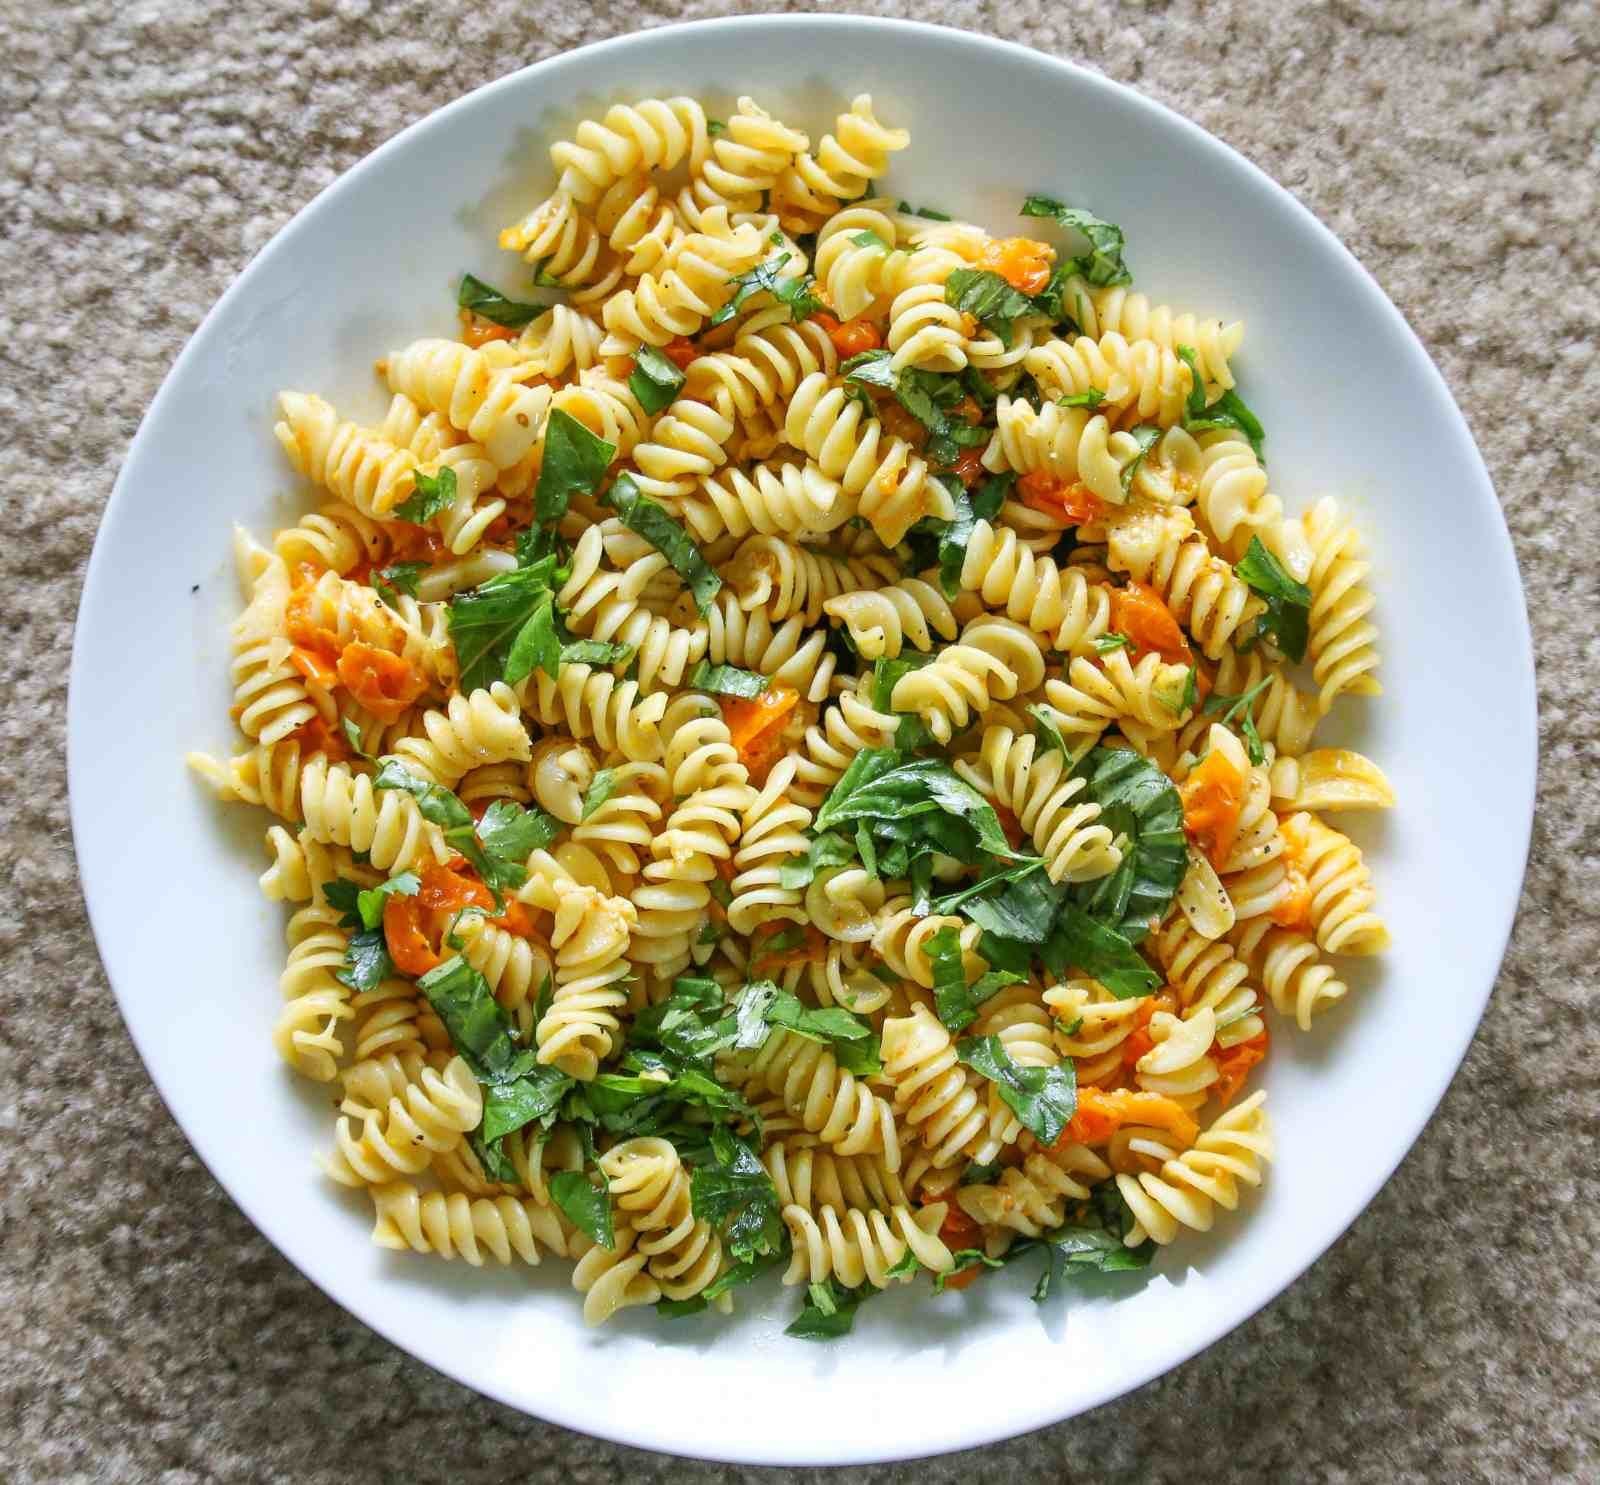 Fusilli Alla Caprese Recipe-Pasta With Cherry Tomatoes And Basil Leaves